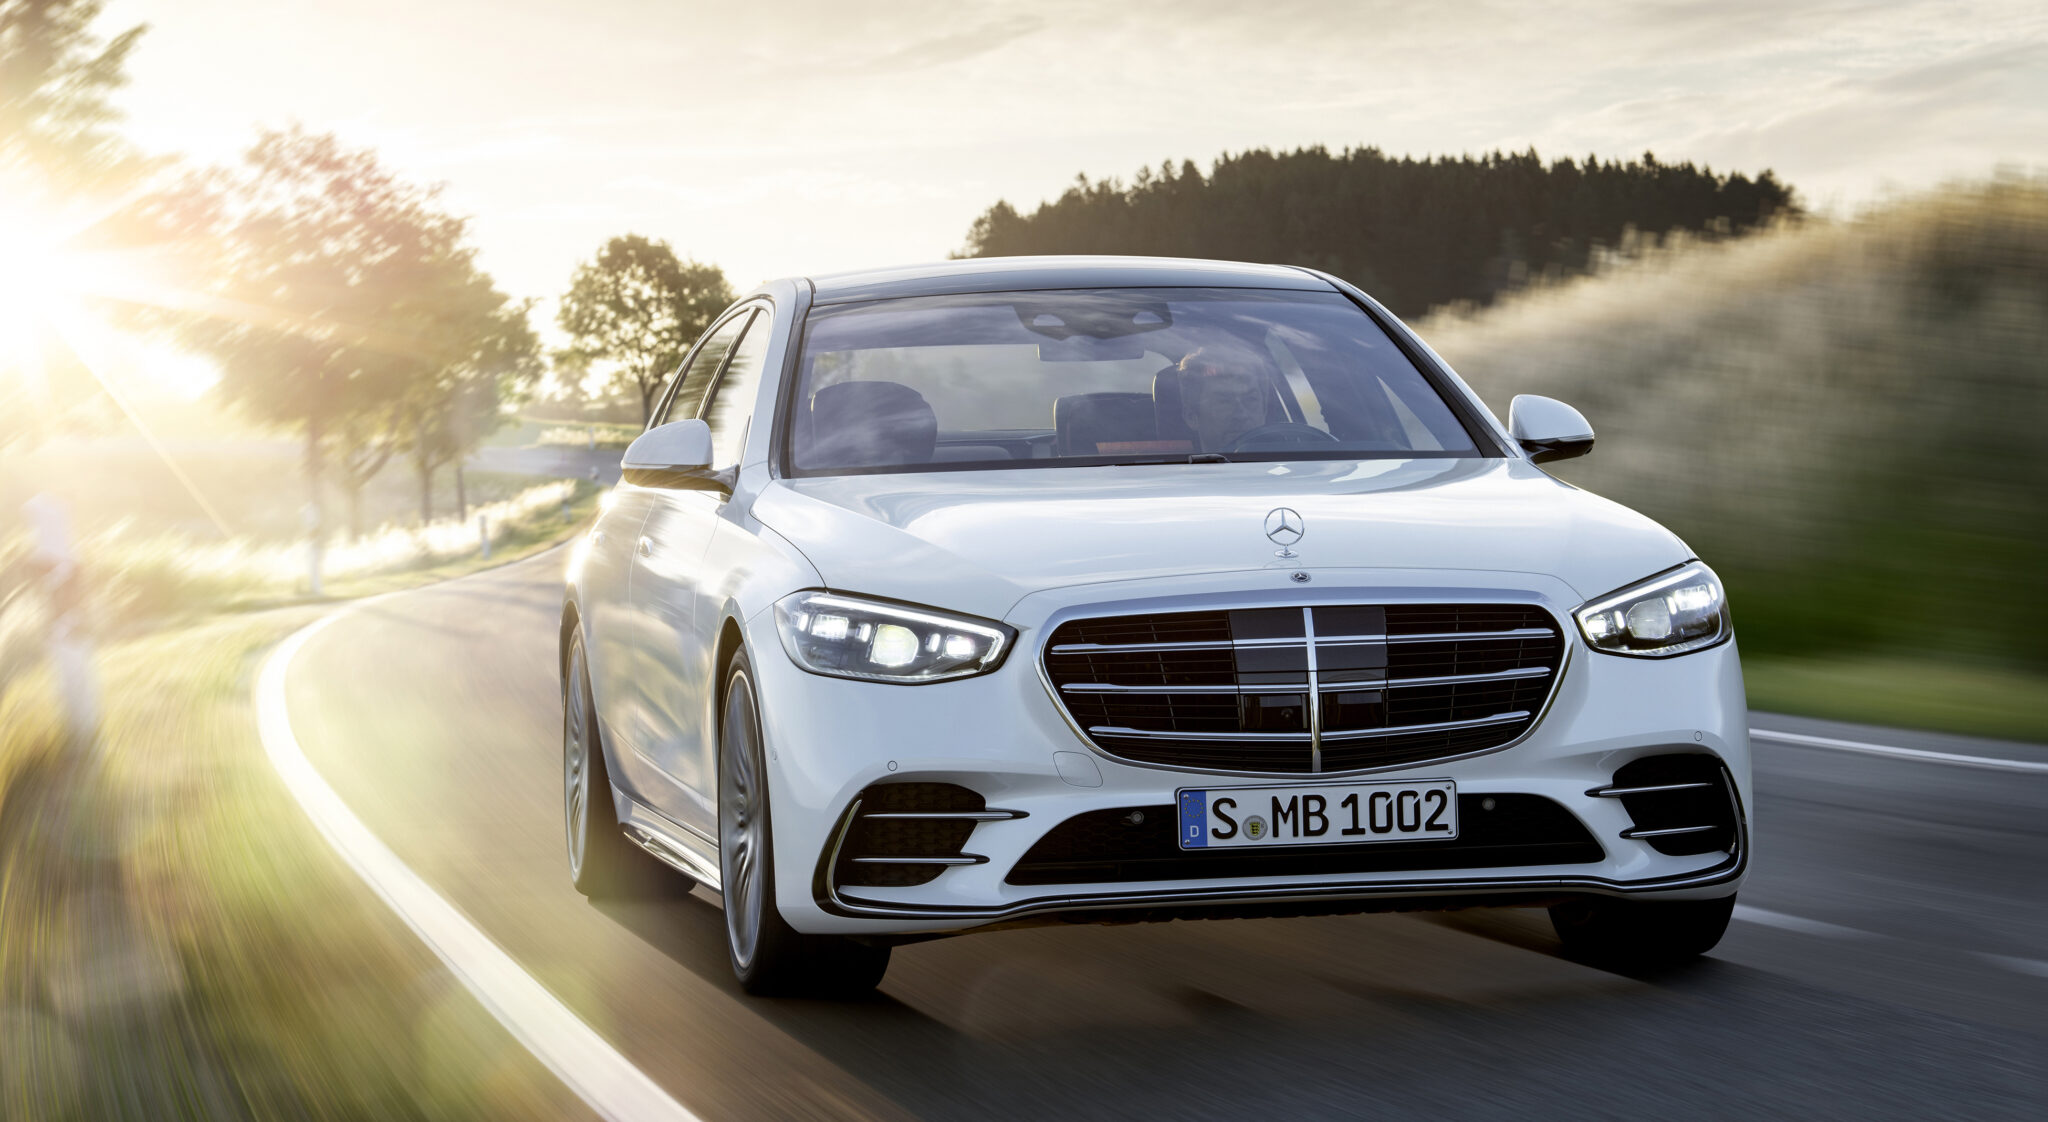 MERCEDES-BENZ S-CLASS: LUXURY IN A NEW WAY